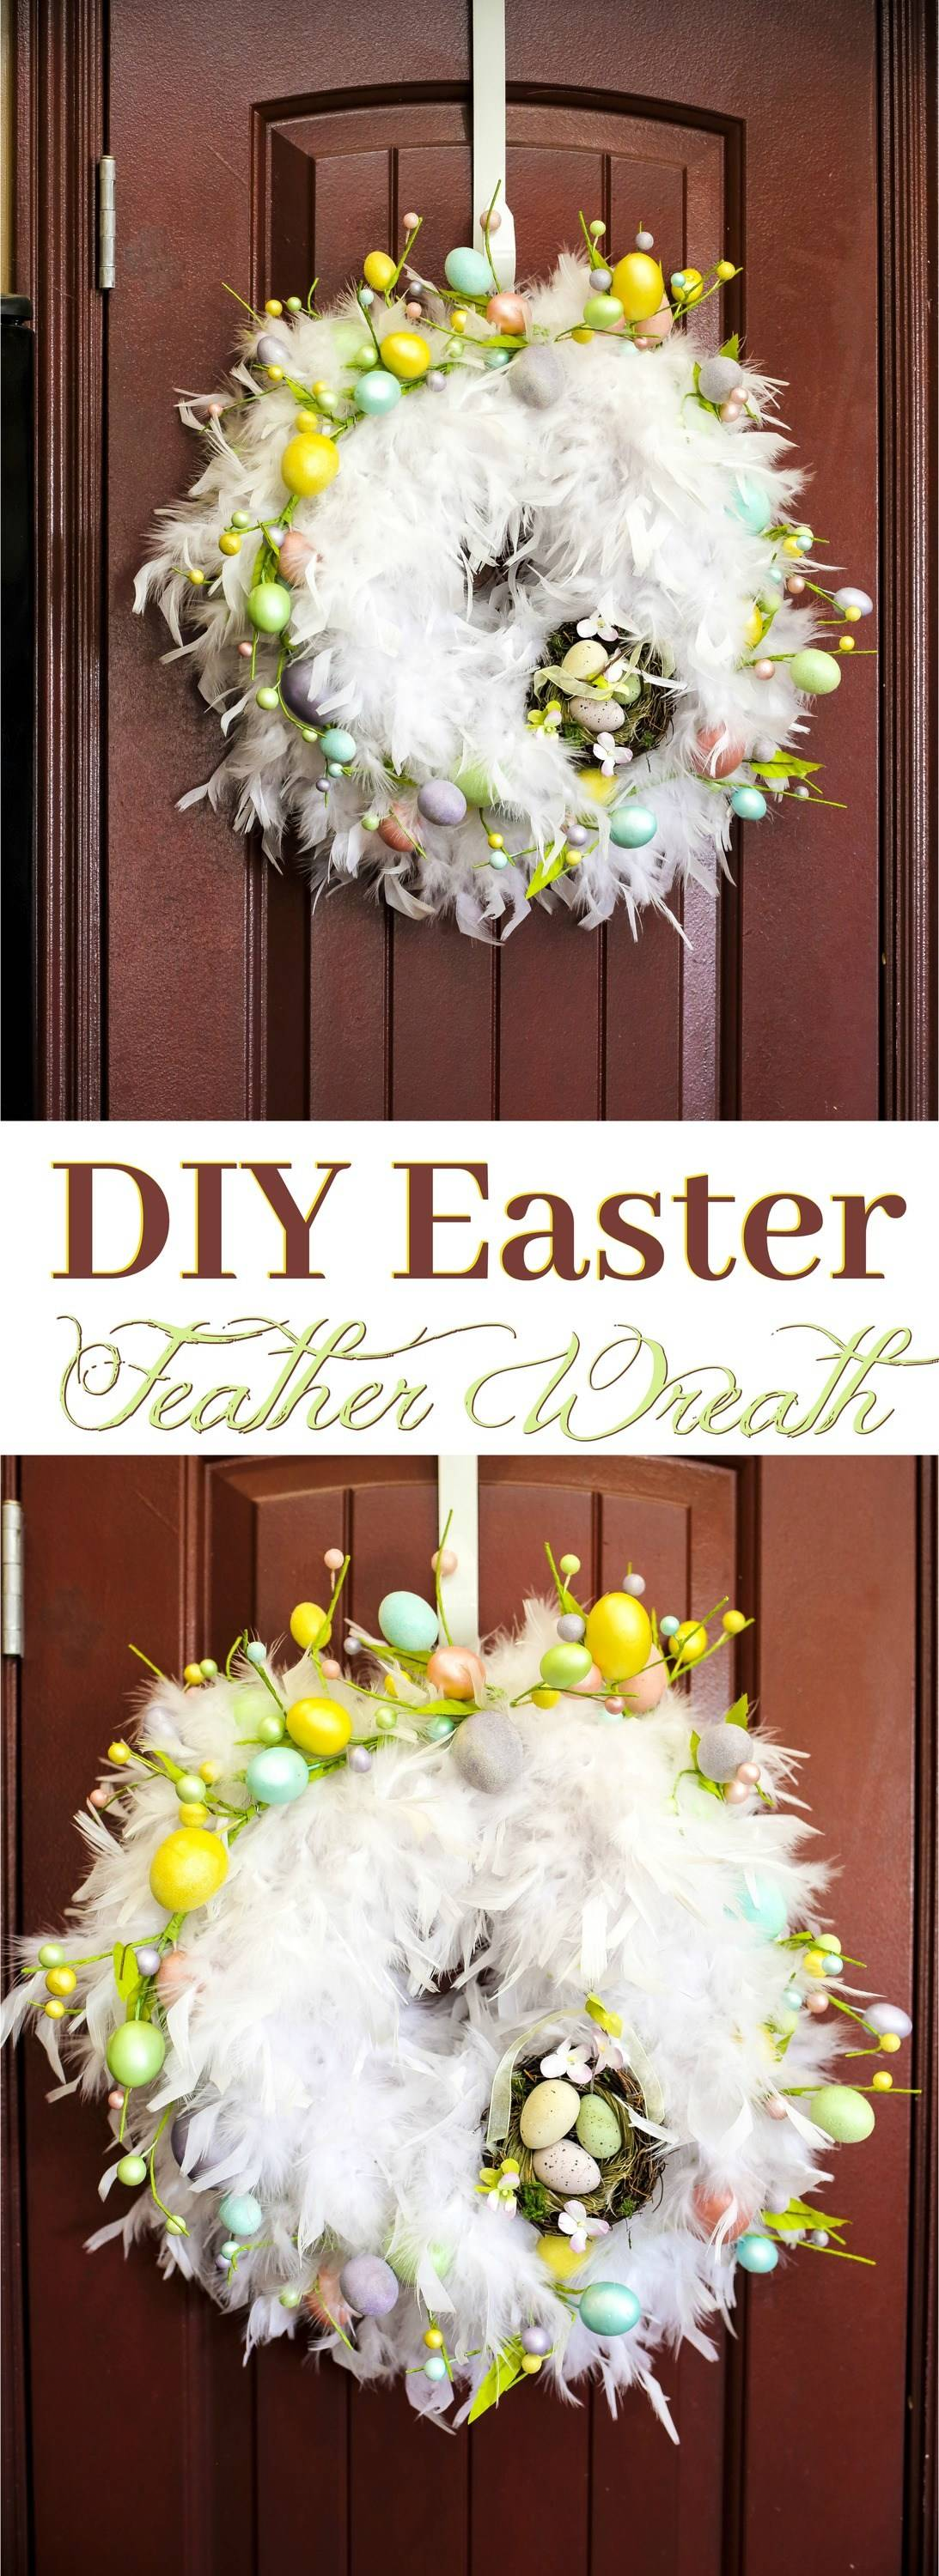 Make a statement with a stunning, chic DIY White feather Easter Wreath in only 30 minutes! Discover how to make this easy DIY Feather Wreath only costs about $25 and is the perfect home accent!